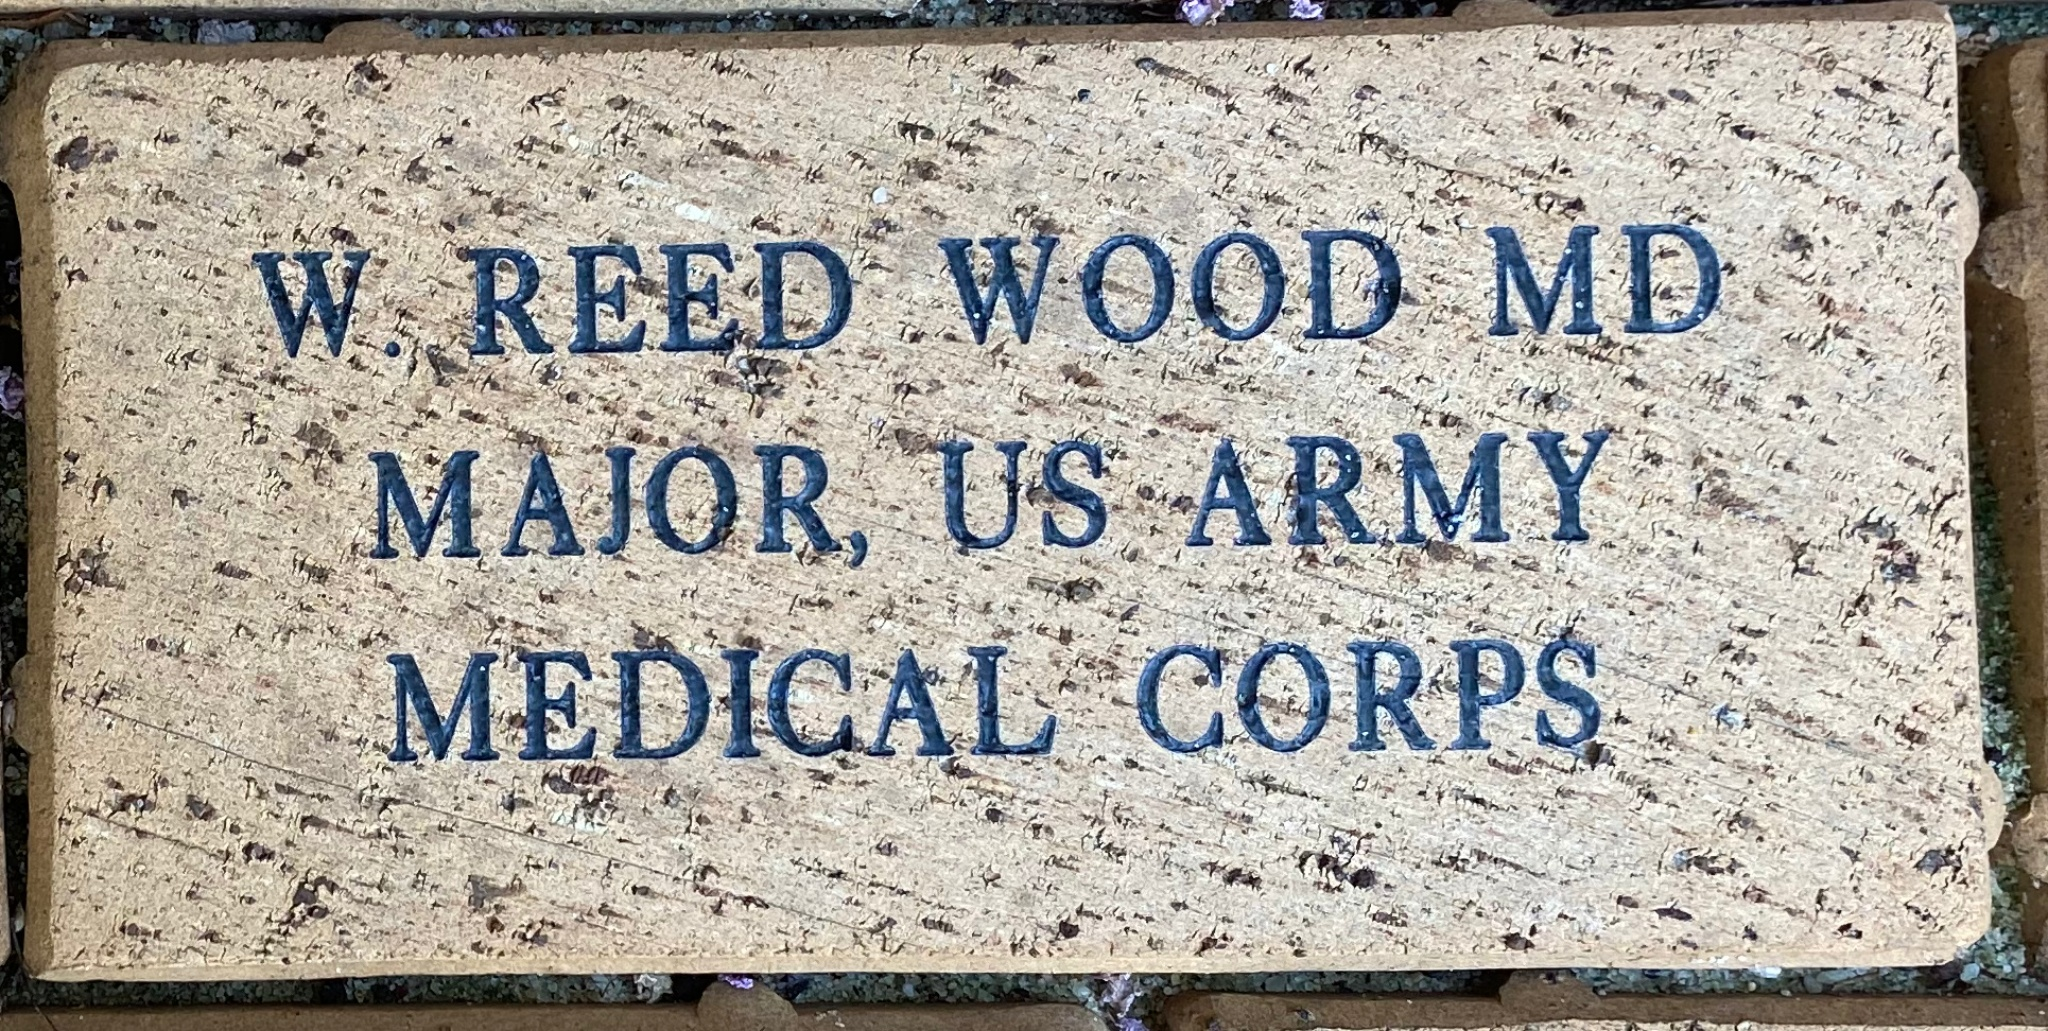 W. REED WOOD MD MAJOR, US ARMY MEDICAL CORPS